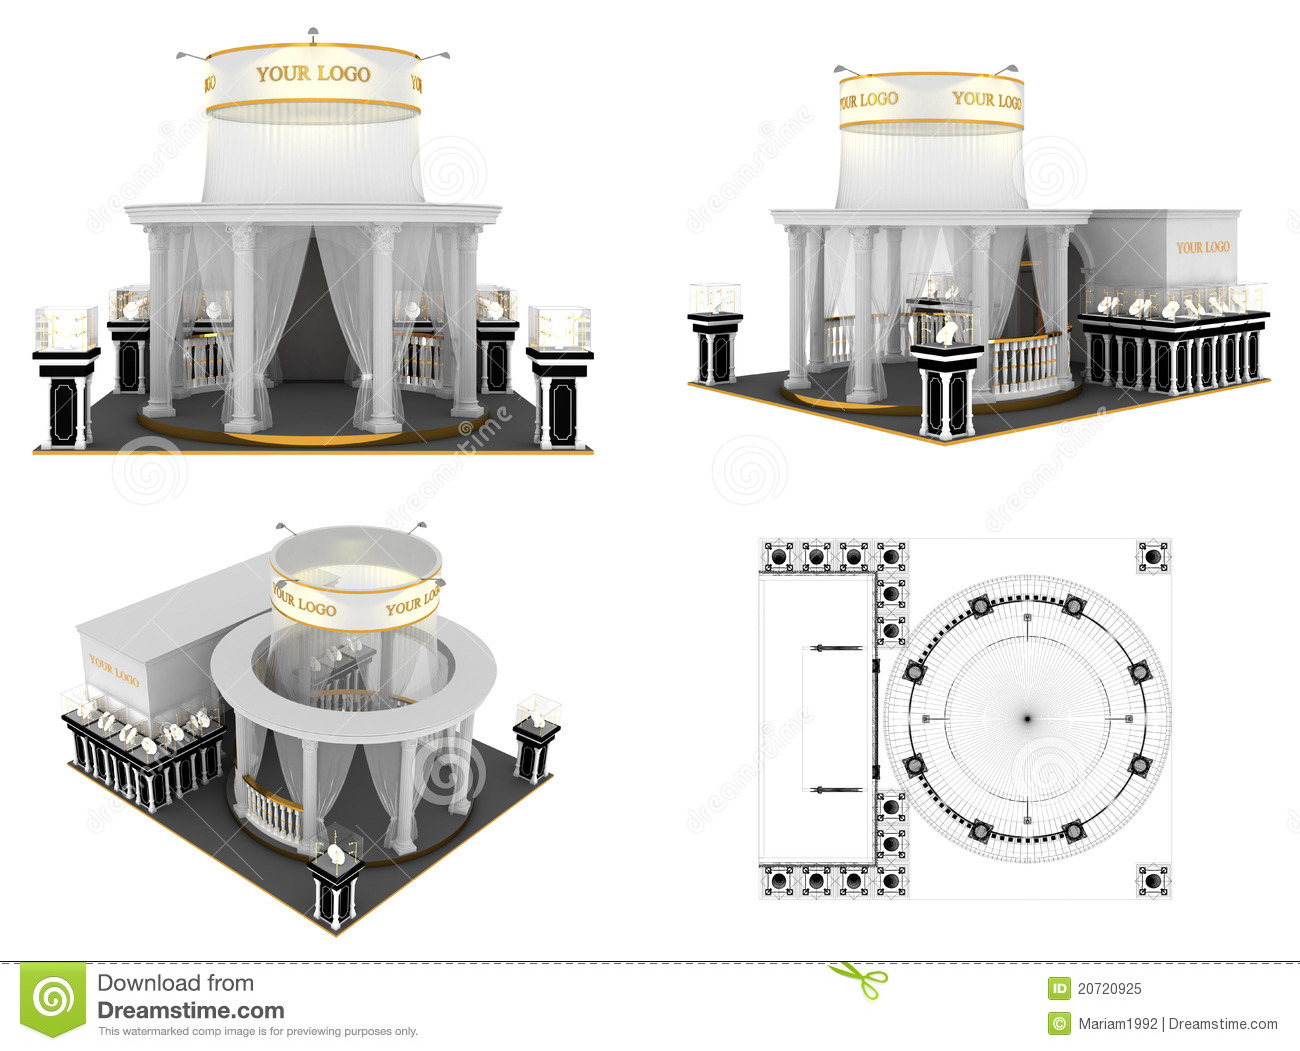 Exhibition Stand Drawing : Exhibition stand stock illustration image of indoor